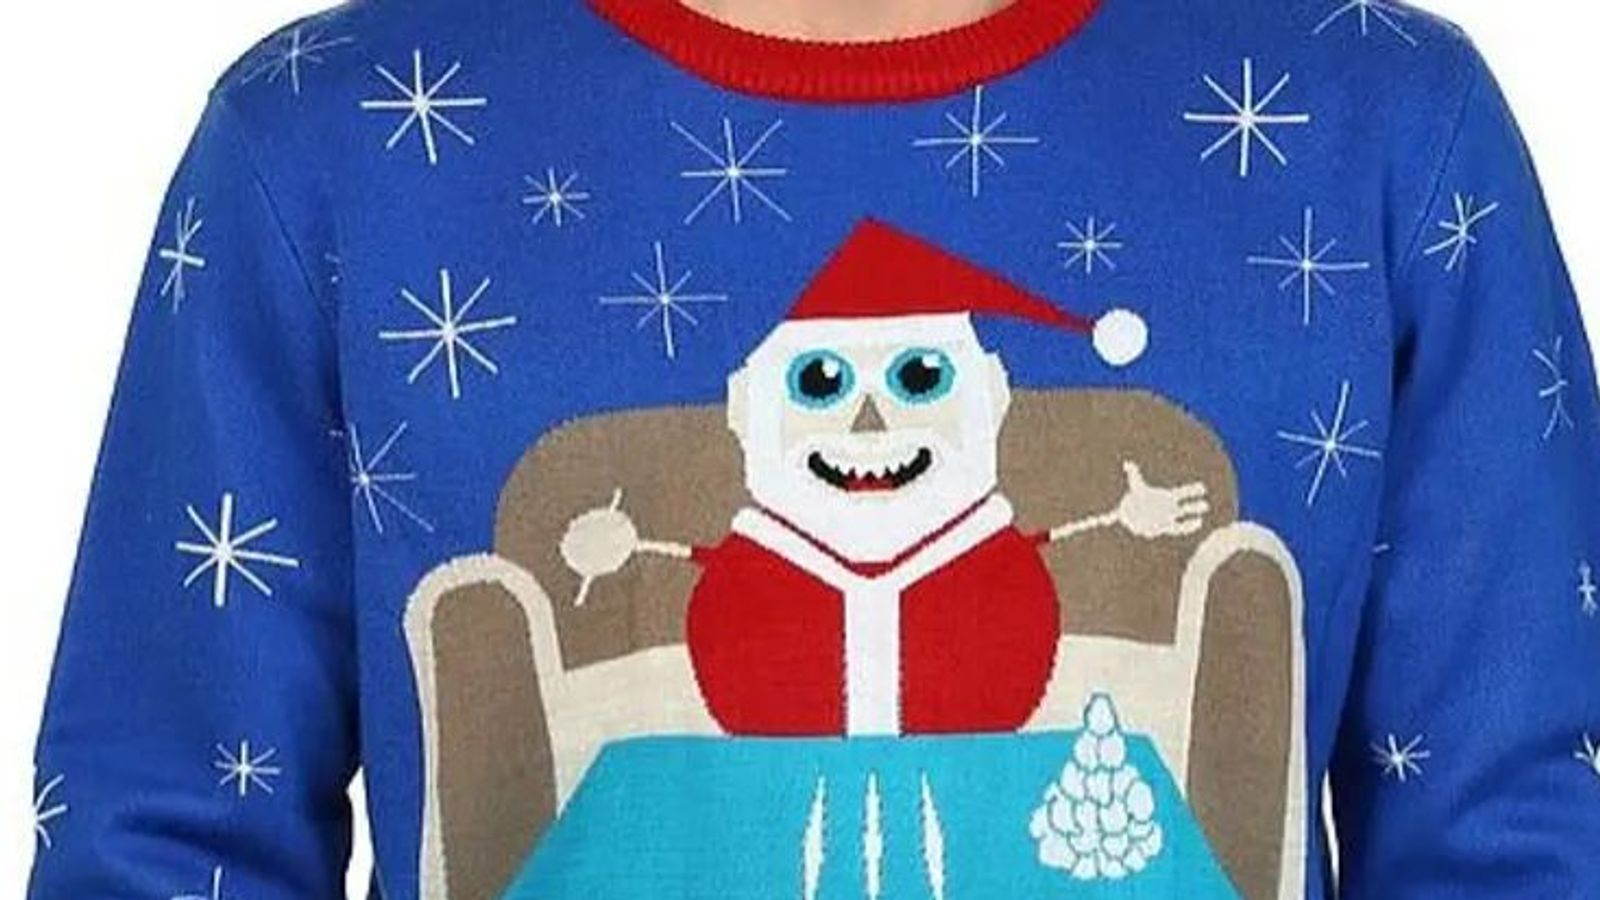 Walmart pulls jumper showing Santa with 'lines of cocaine' - EpicNews